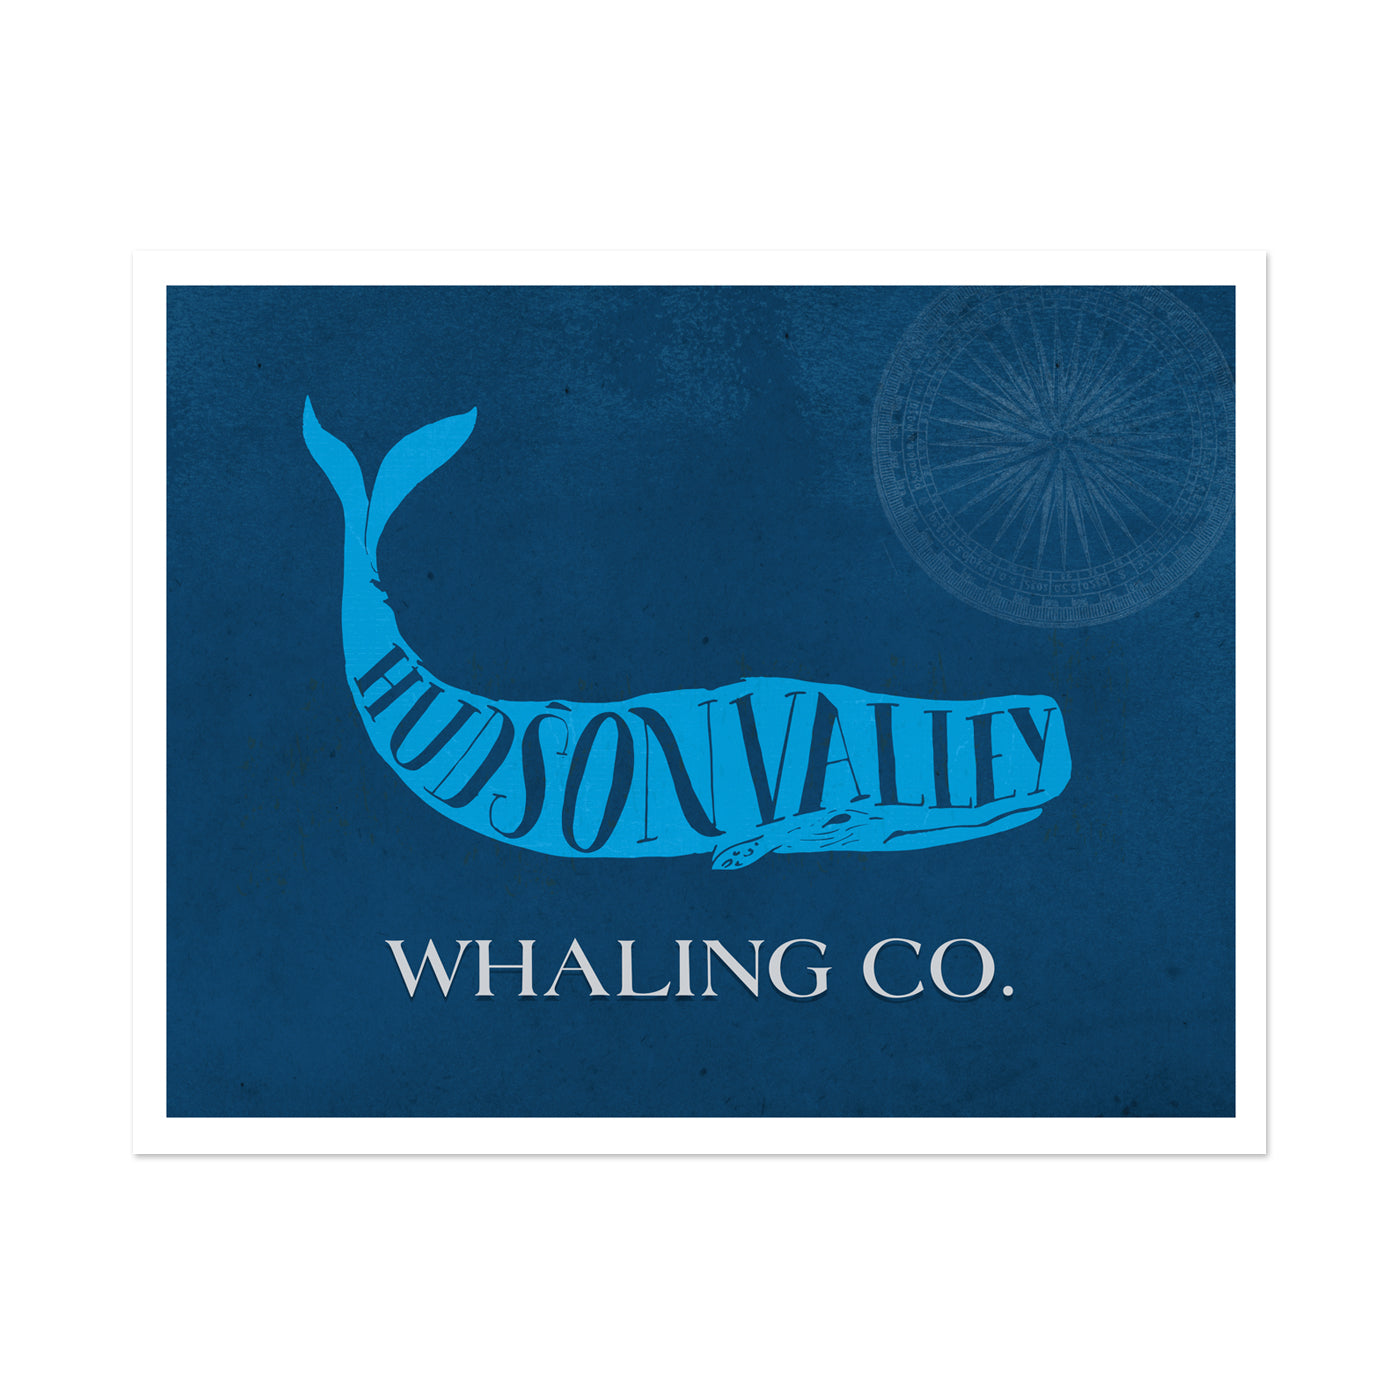 Hudson Valley Whaling Co.